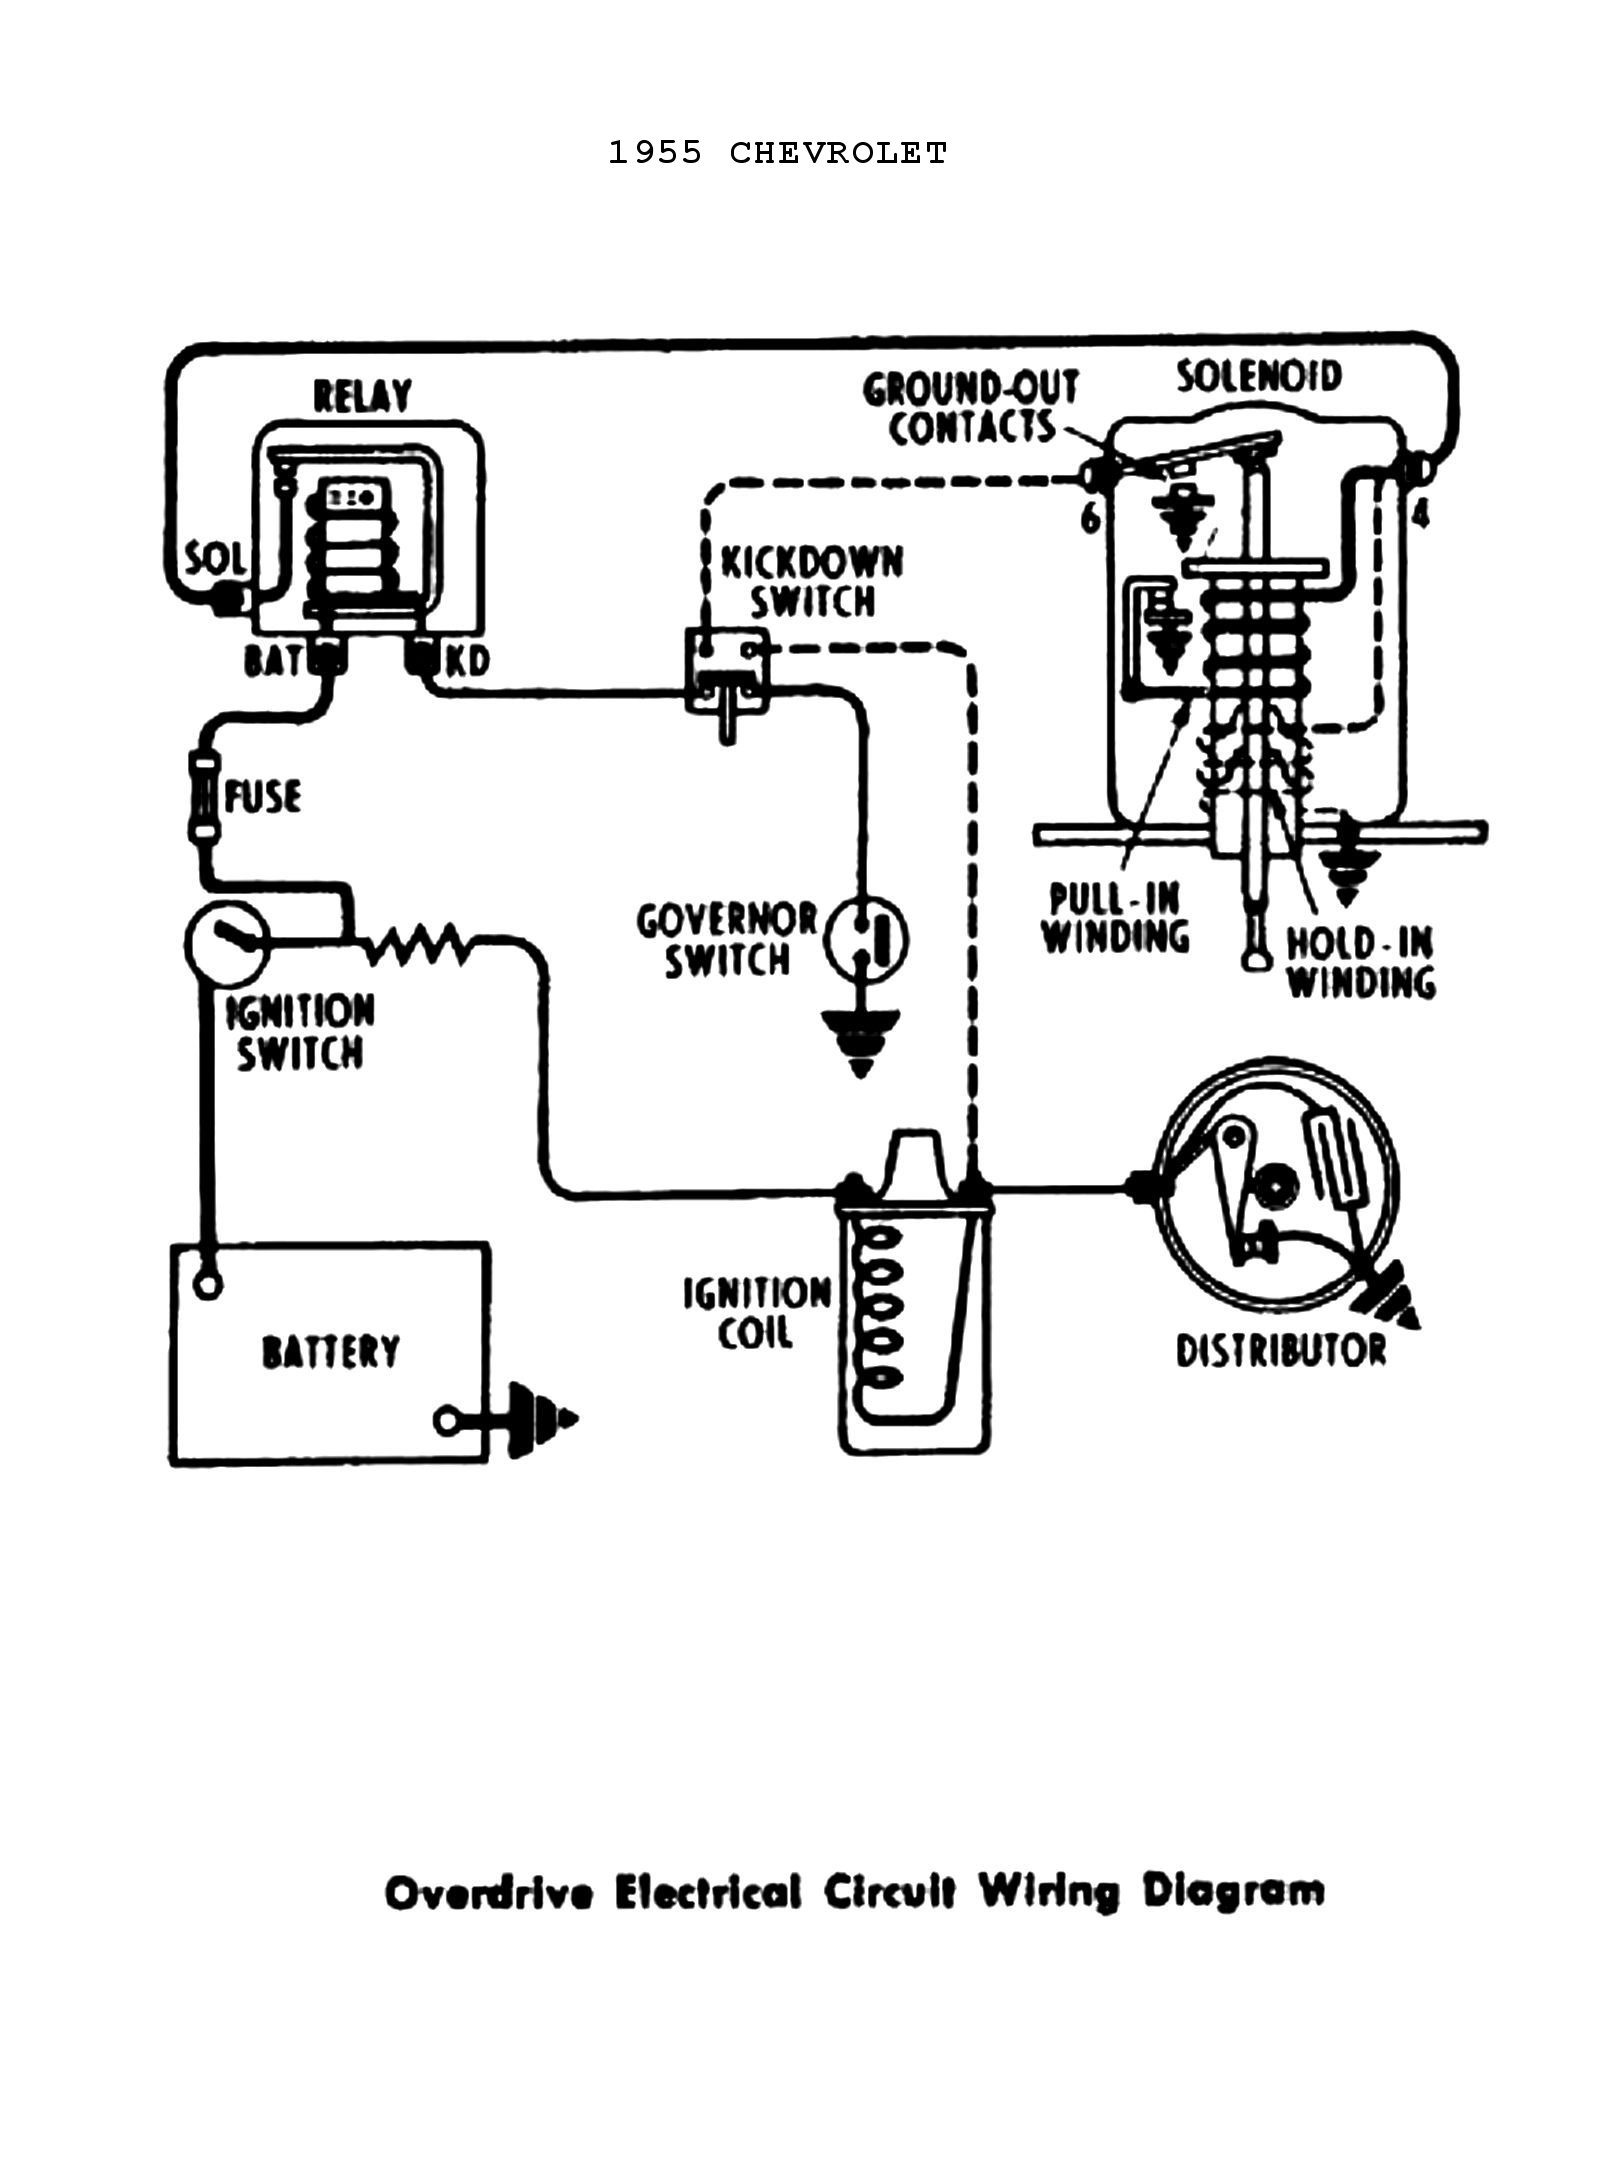 automotive voltage regulator wiring diagram Collection-chevy wiring diagrams rh chevy oldcarmanualproject Ford Alternator Wiring Diagram Delco Remy Voltage Regulator Wiring 2-k